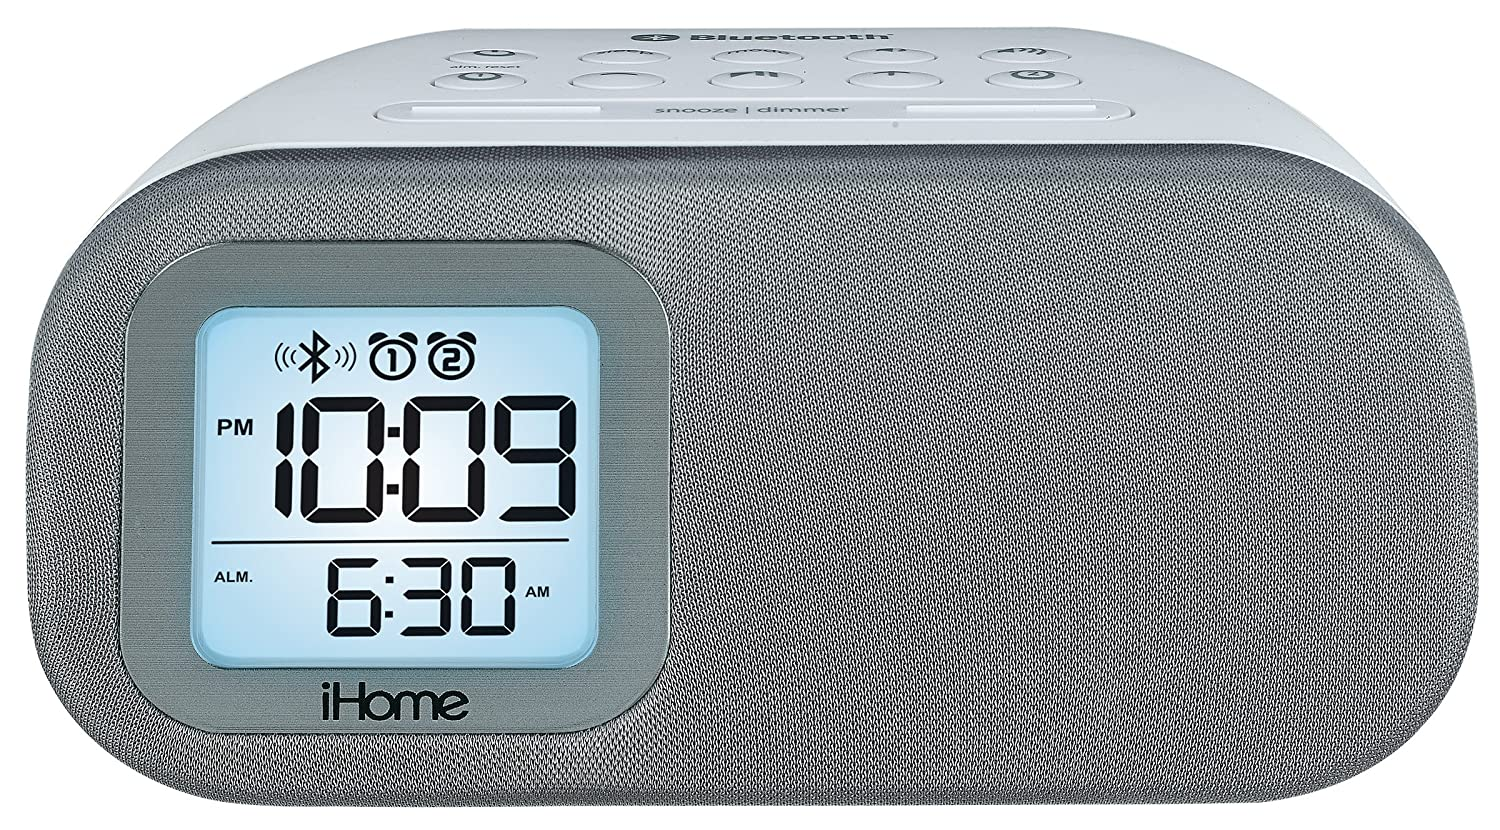 SDI Technologies iBT210B Bluetooth Dual Alarm FM Clock Radio with Speakerphone and USB Charging, Black